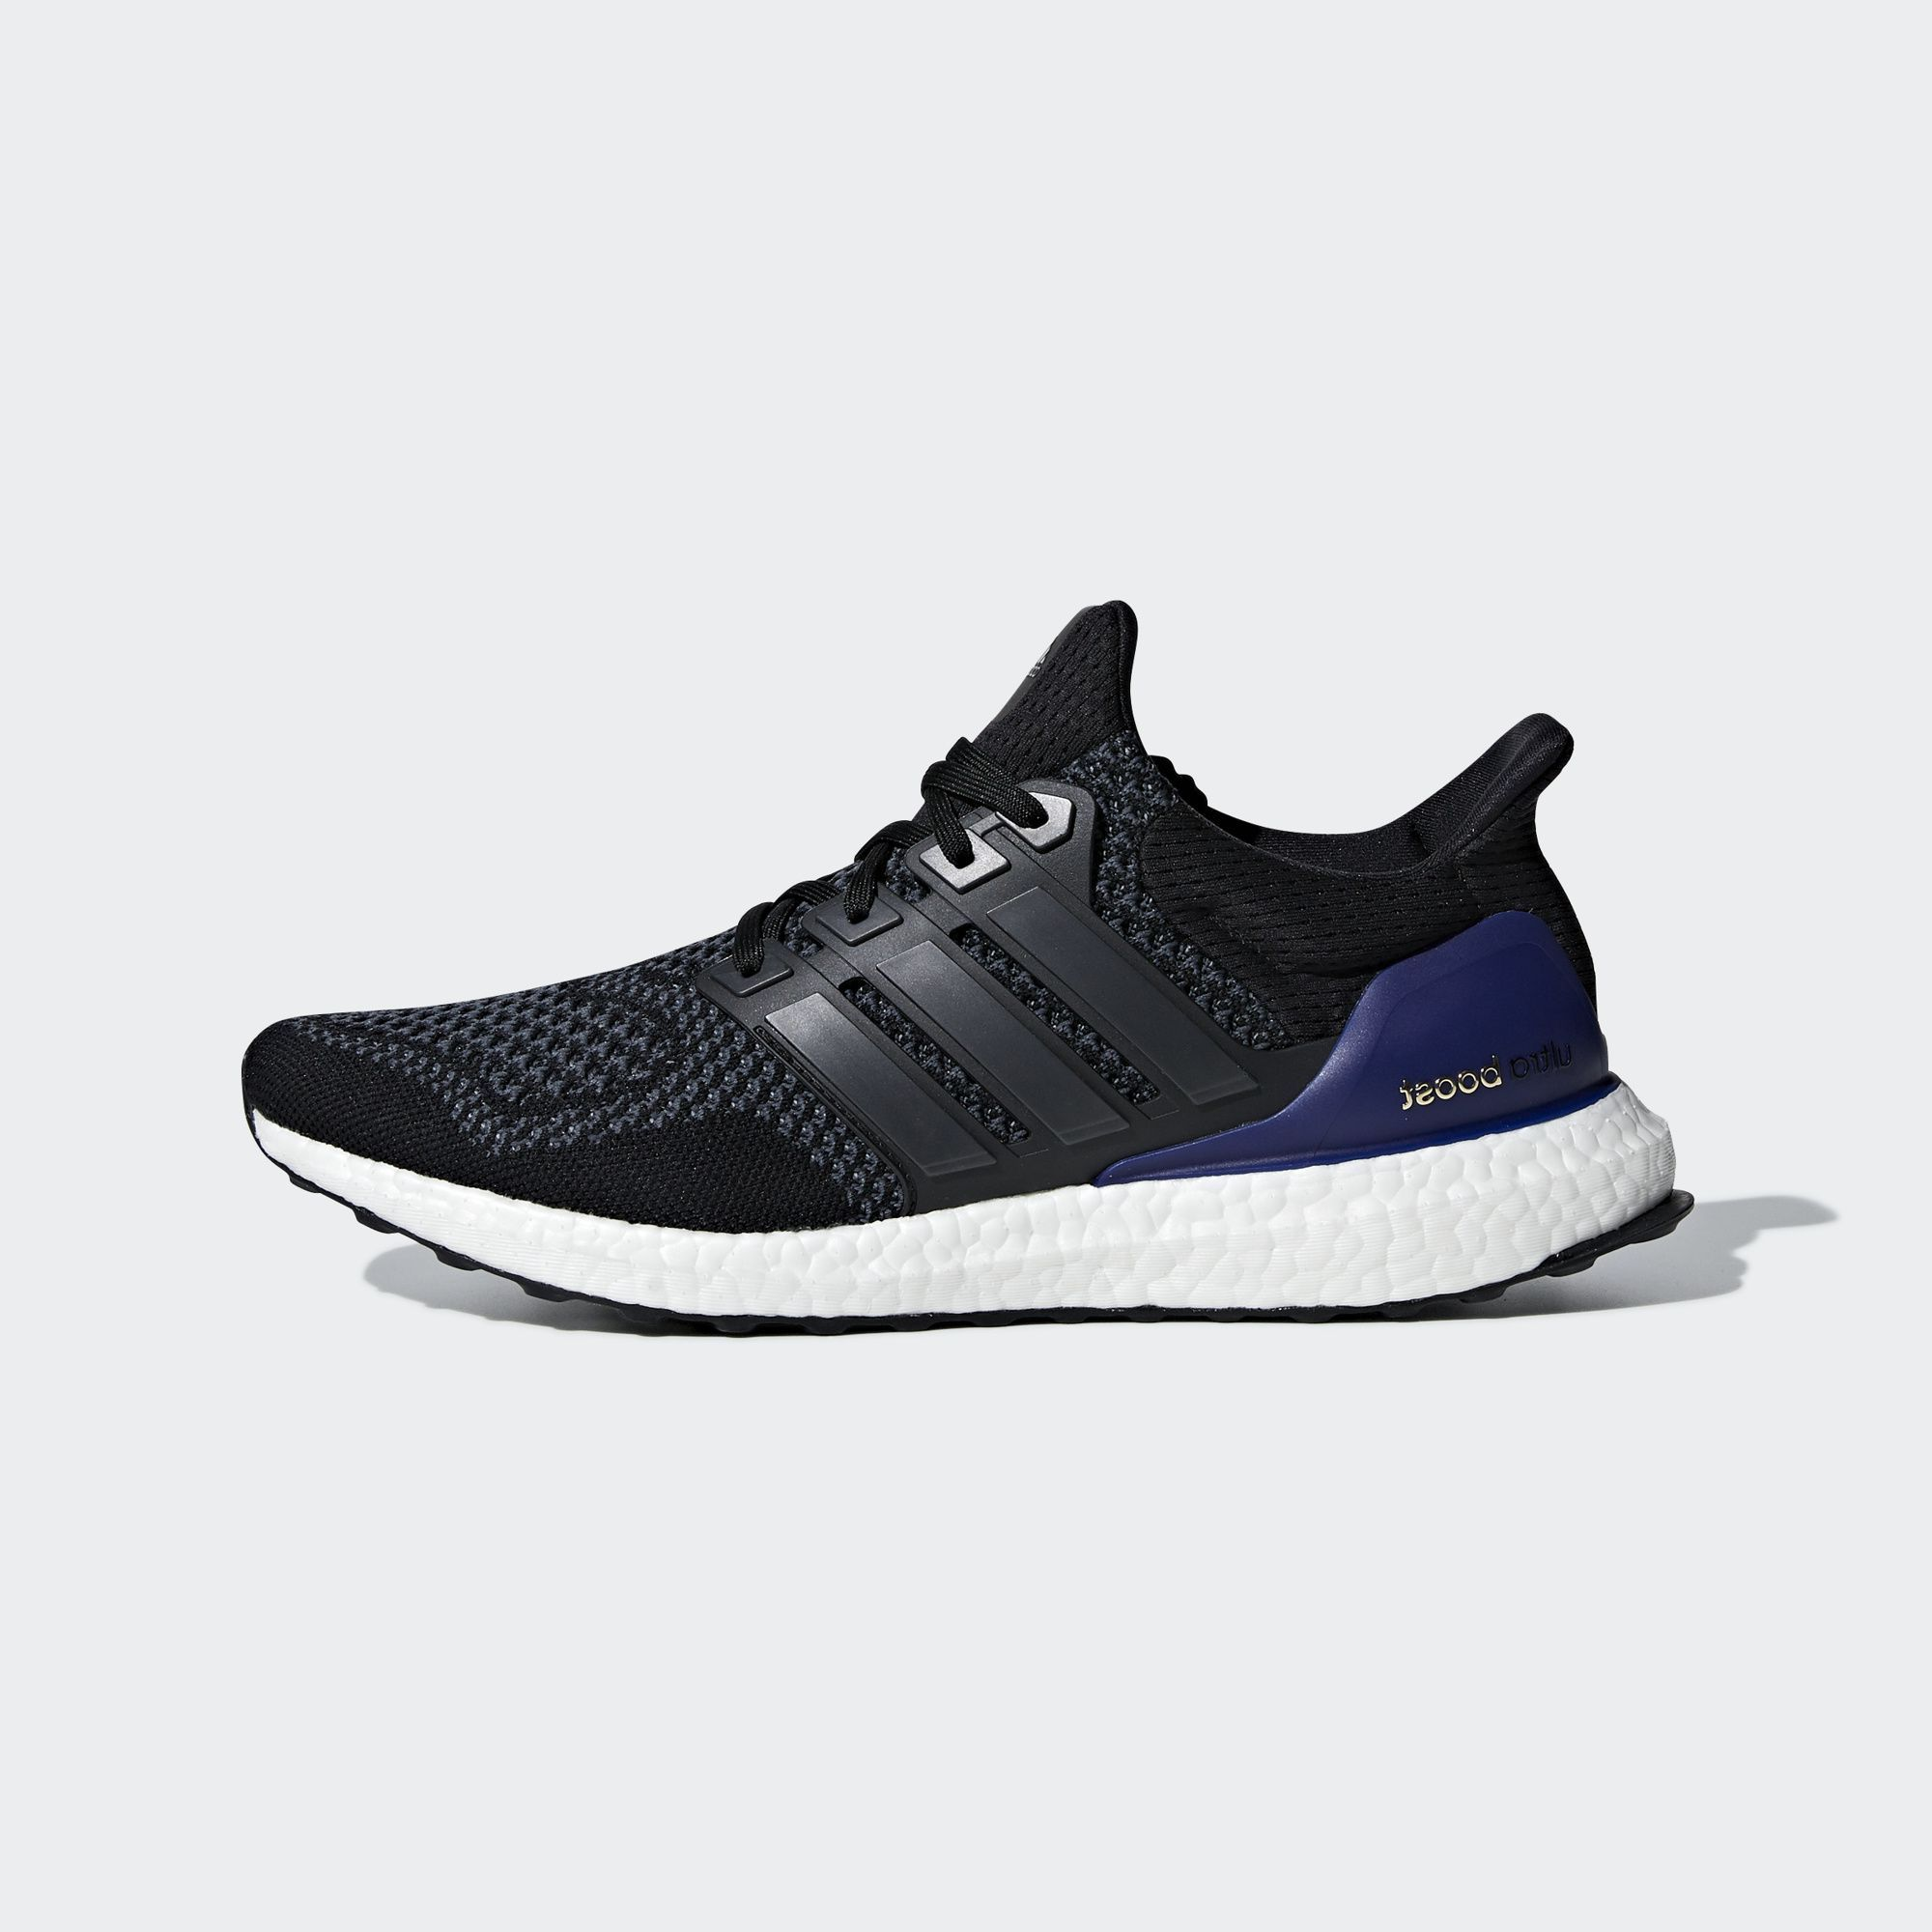 discount d6a61 b03d5 ... where can i buy adidas ultra boost 1.0 og core black purple 201812 01  2018 81ae2